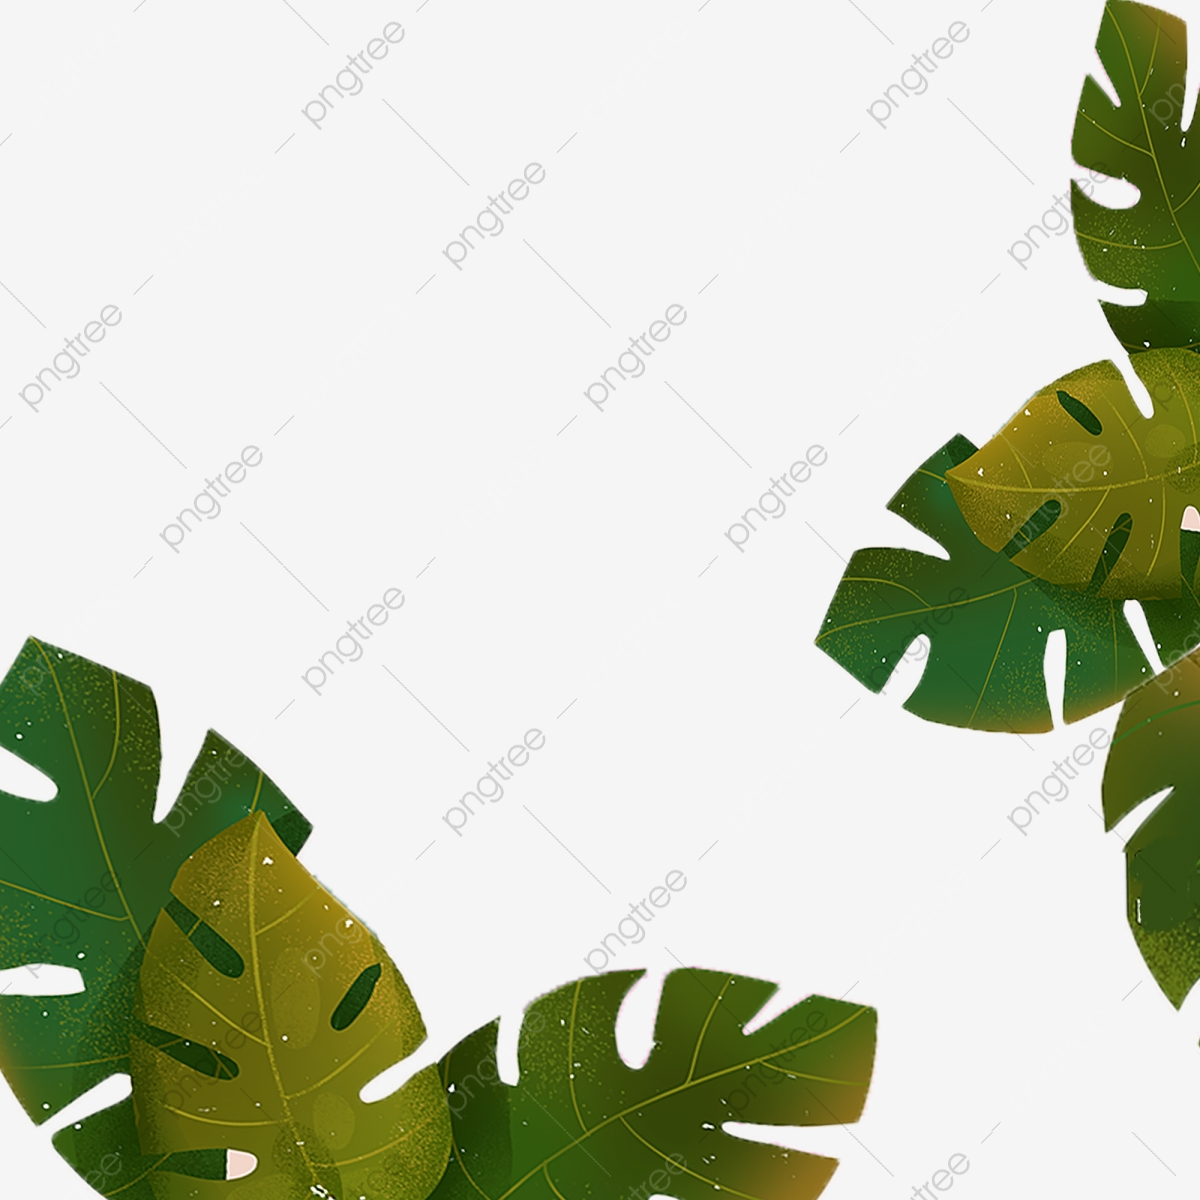 Plant Leaf Cartoon Png Material Plant Leaves Cartoon Leaves Hand Drawn Leaves Png Transparent Clipart Image And Psd File For Free Download